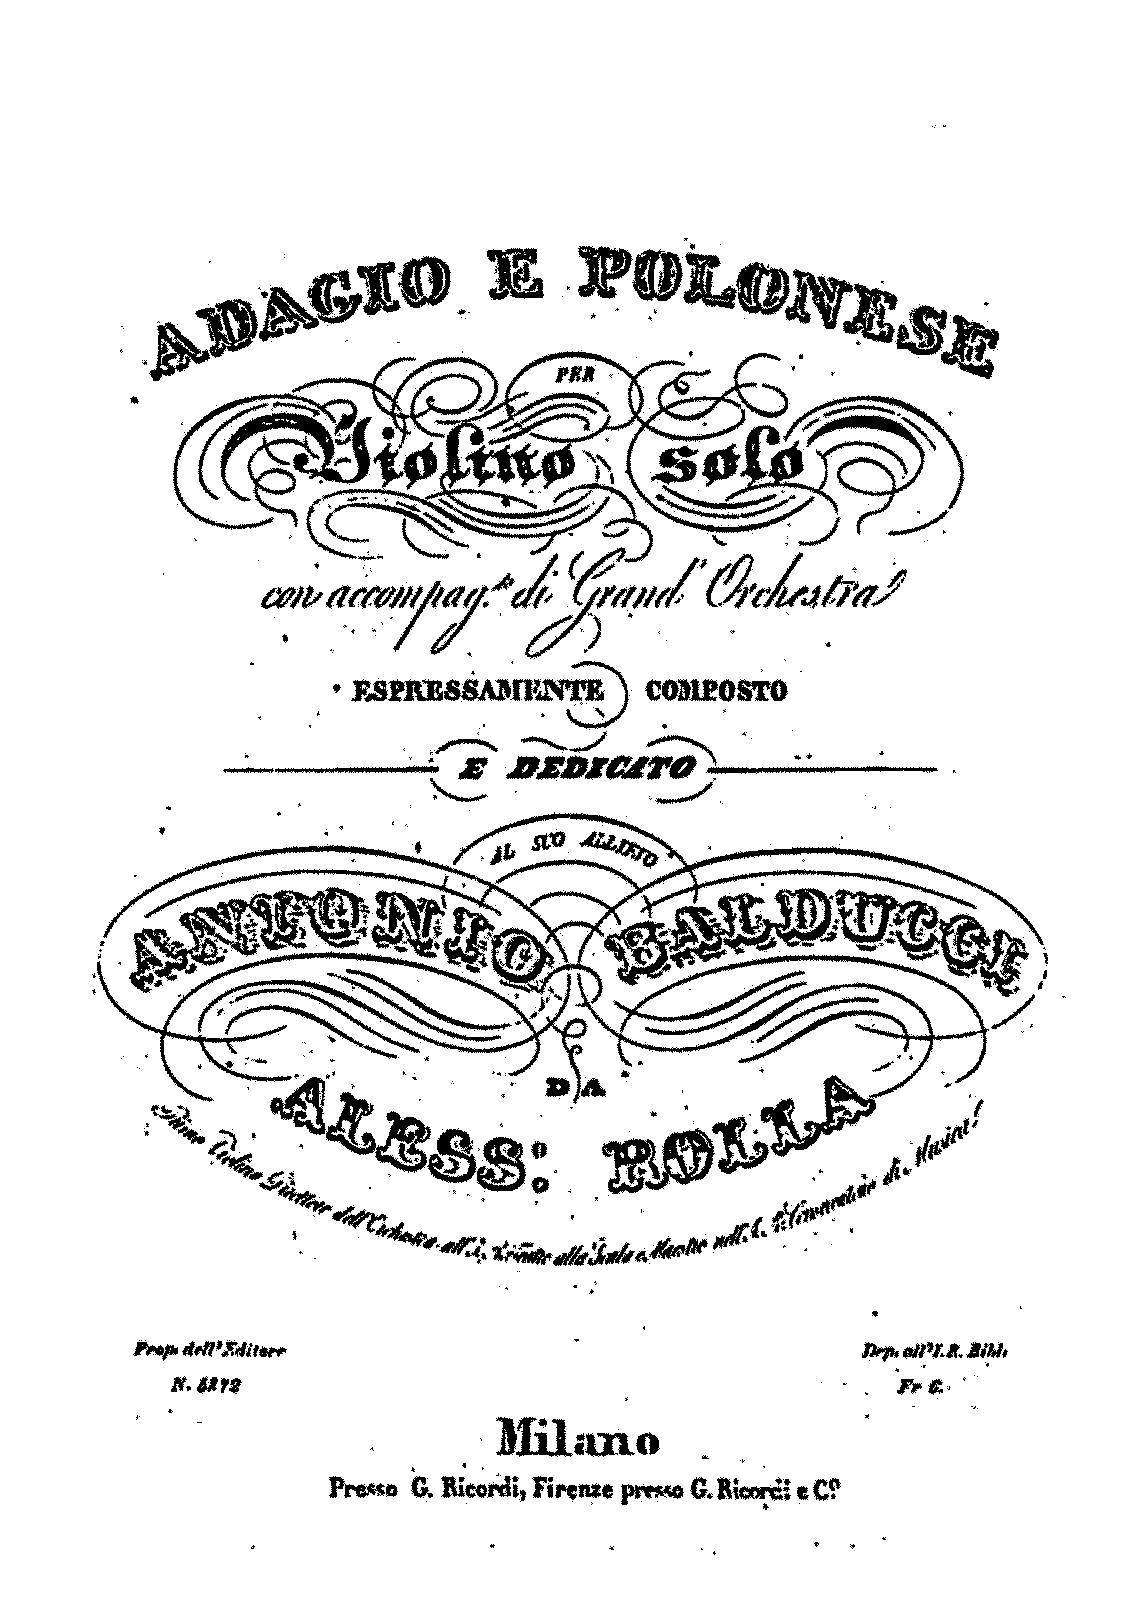 PMLP121570-Rolla Adagio e Polonese BI 484 for Violin and Orchestra.pdf